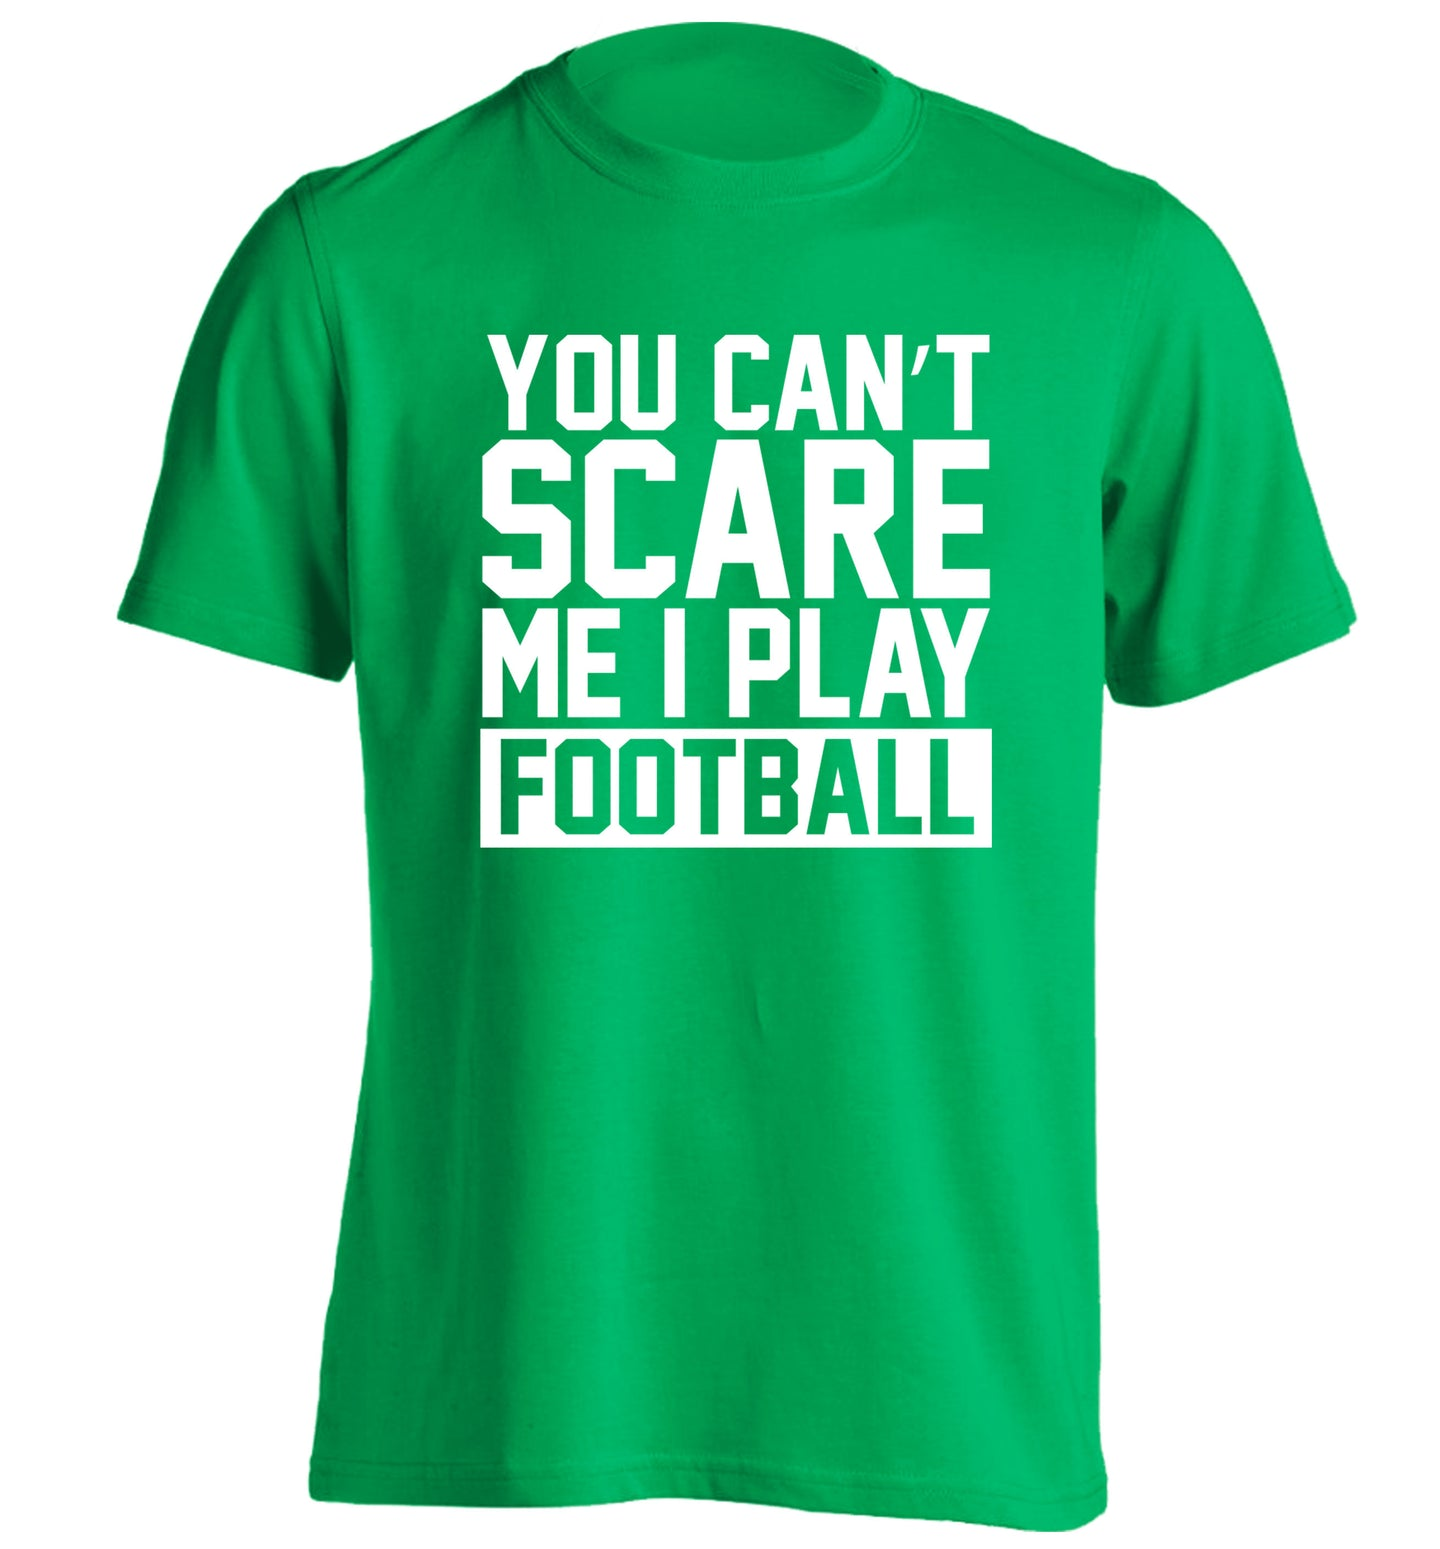 You can't scare me I play football adults unisex green Tshirt 2XL